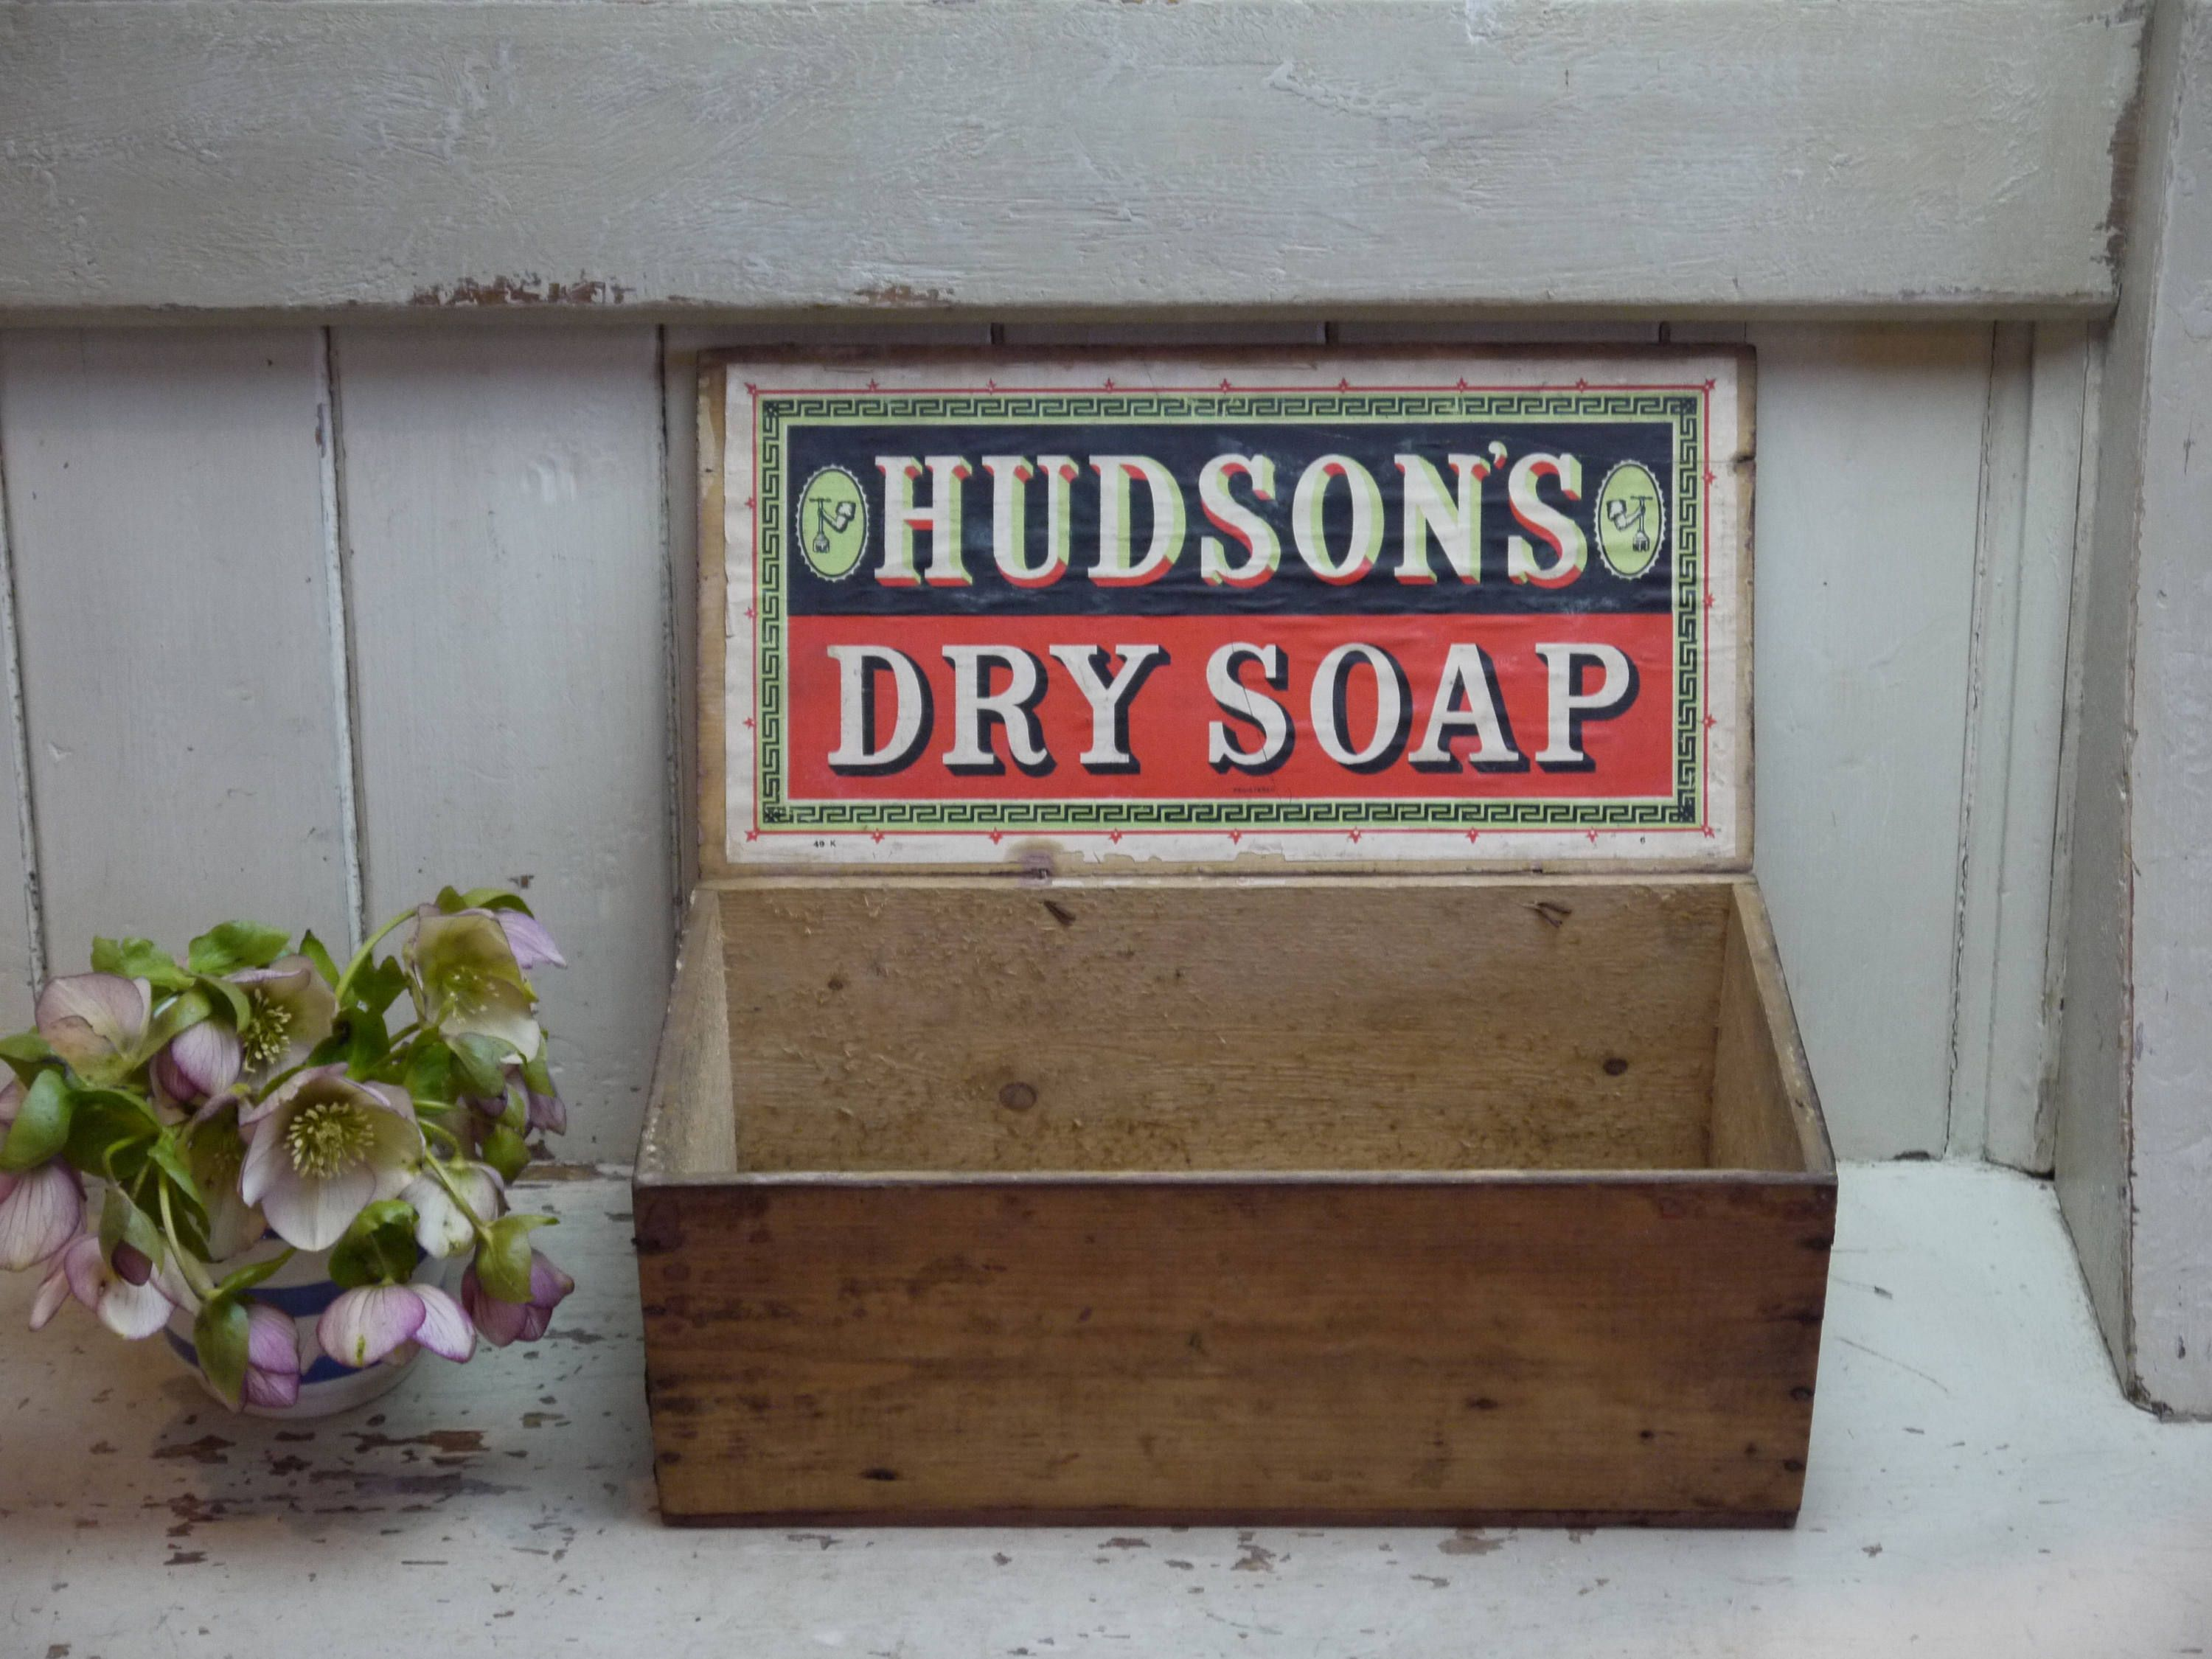 Wedding post box decorations  Antique Wooden Crate  Hudsons Soap Box  Antique Advertising